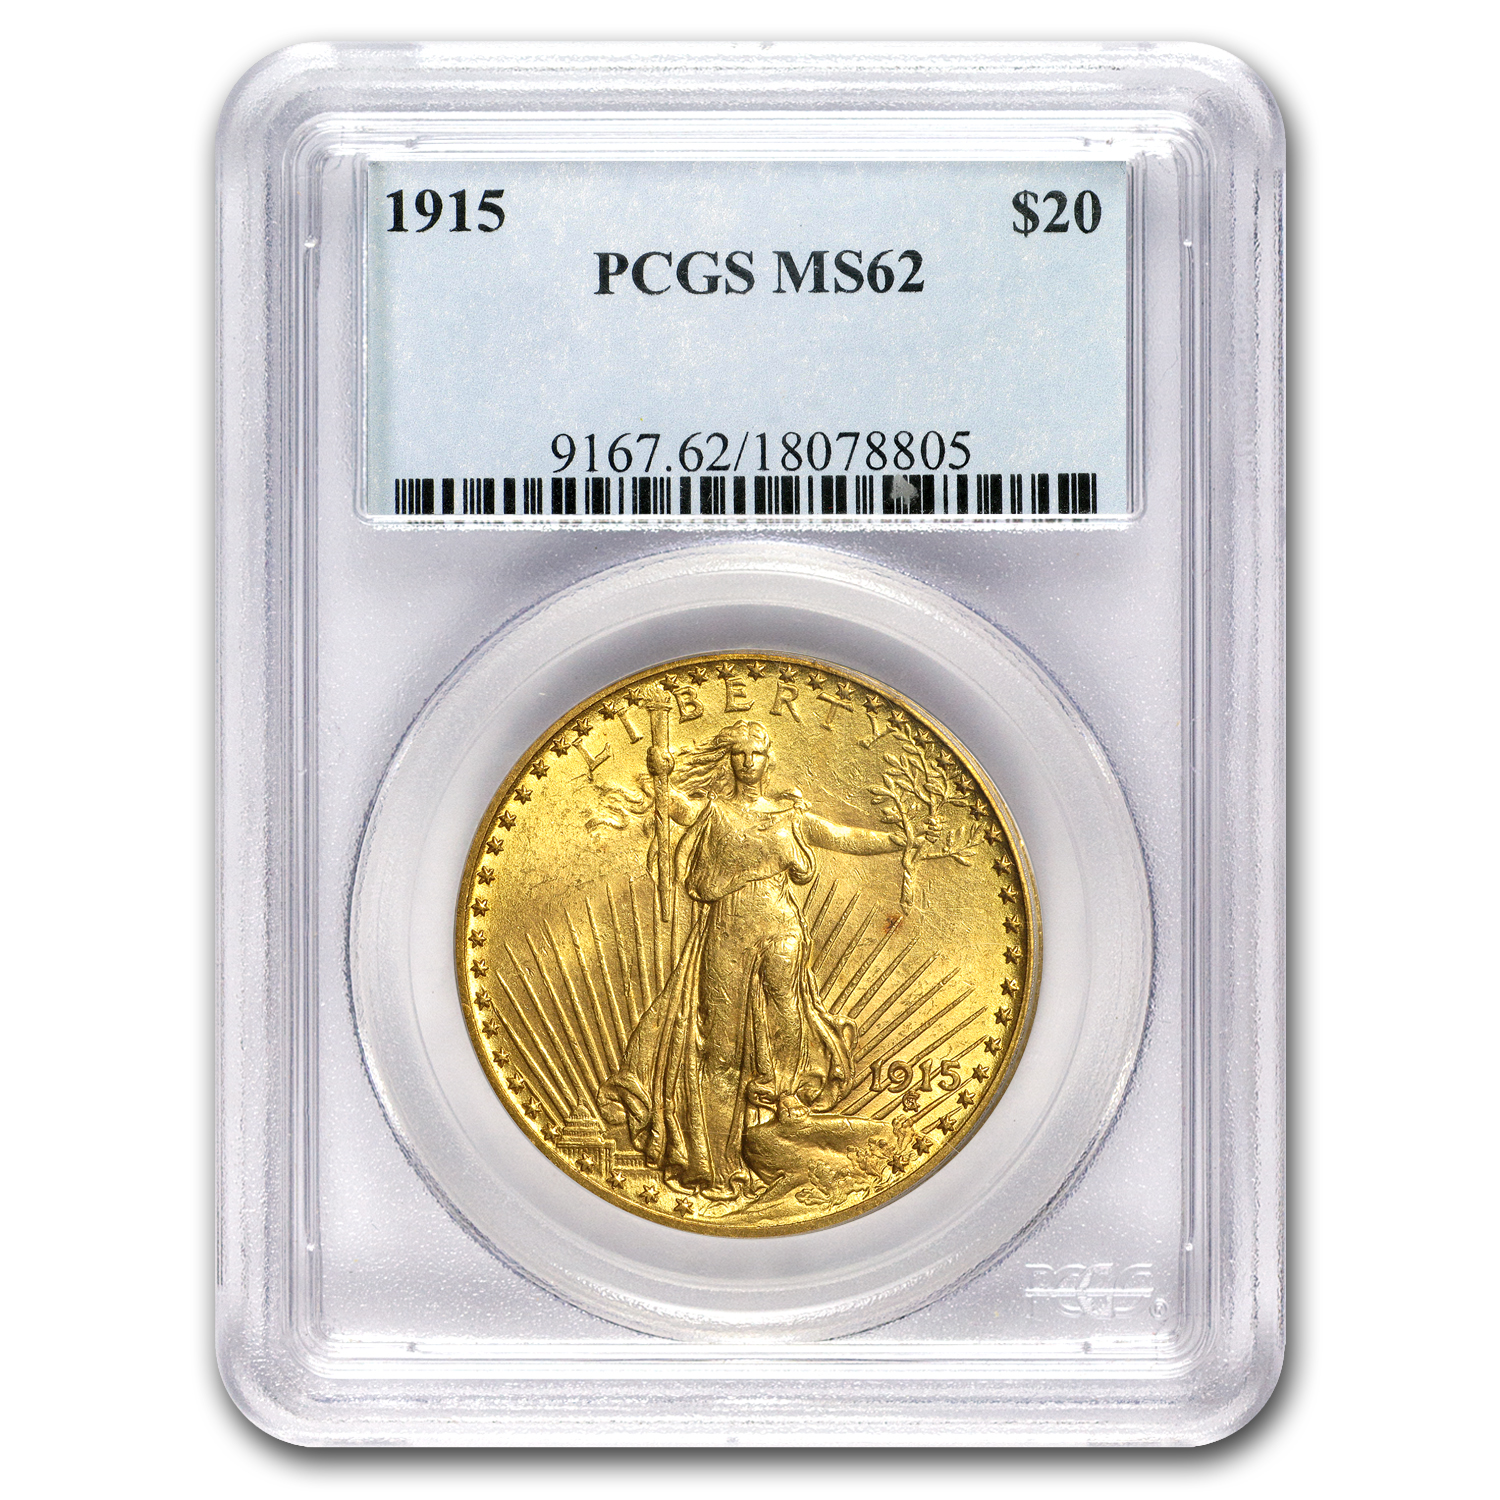 1915 $20 St. Gaudens Gold Double Eagle - MS-62 PCGS